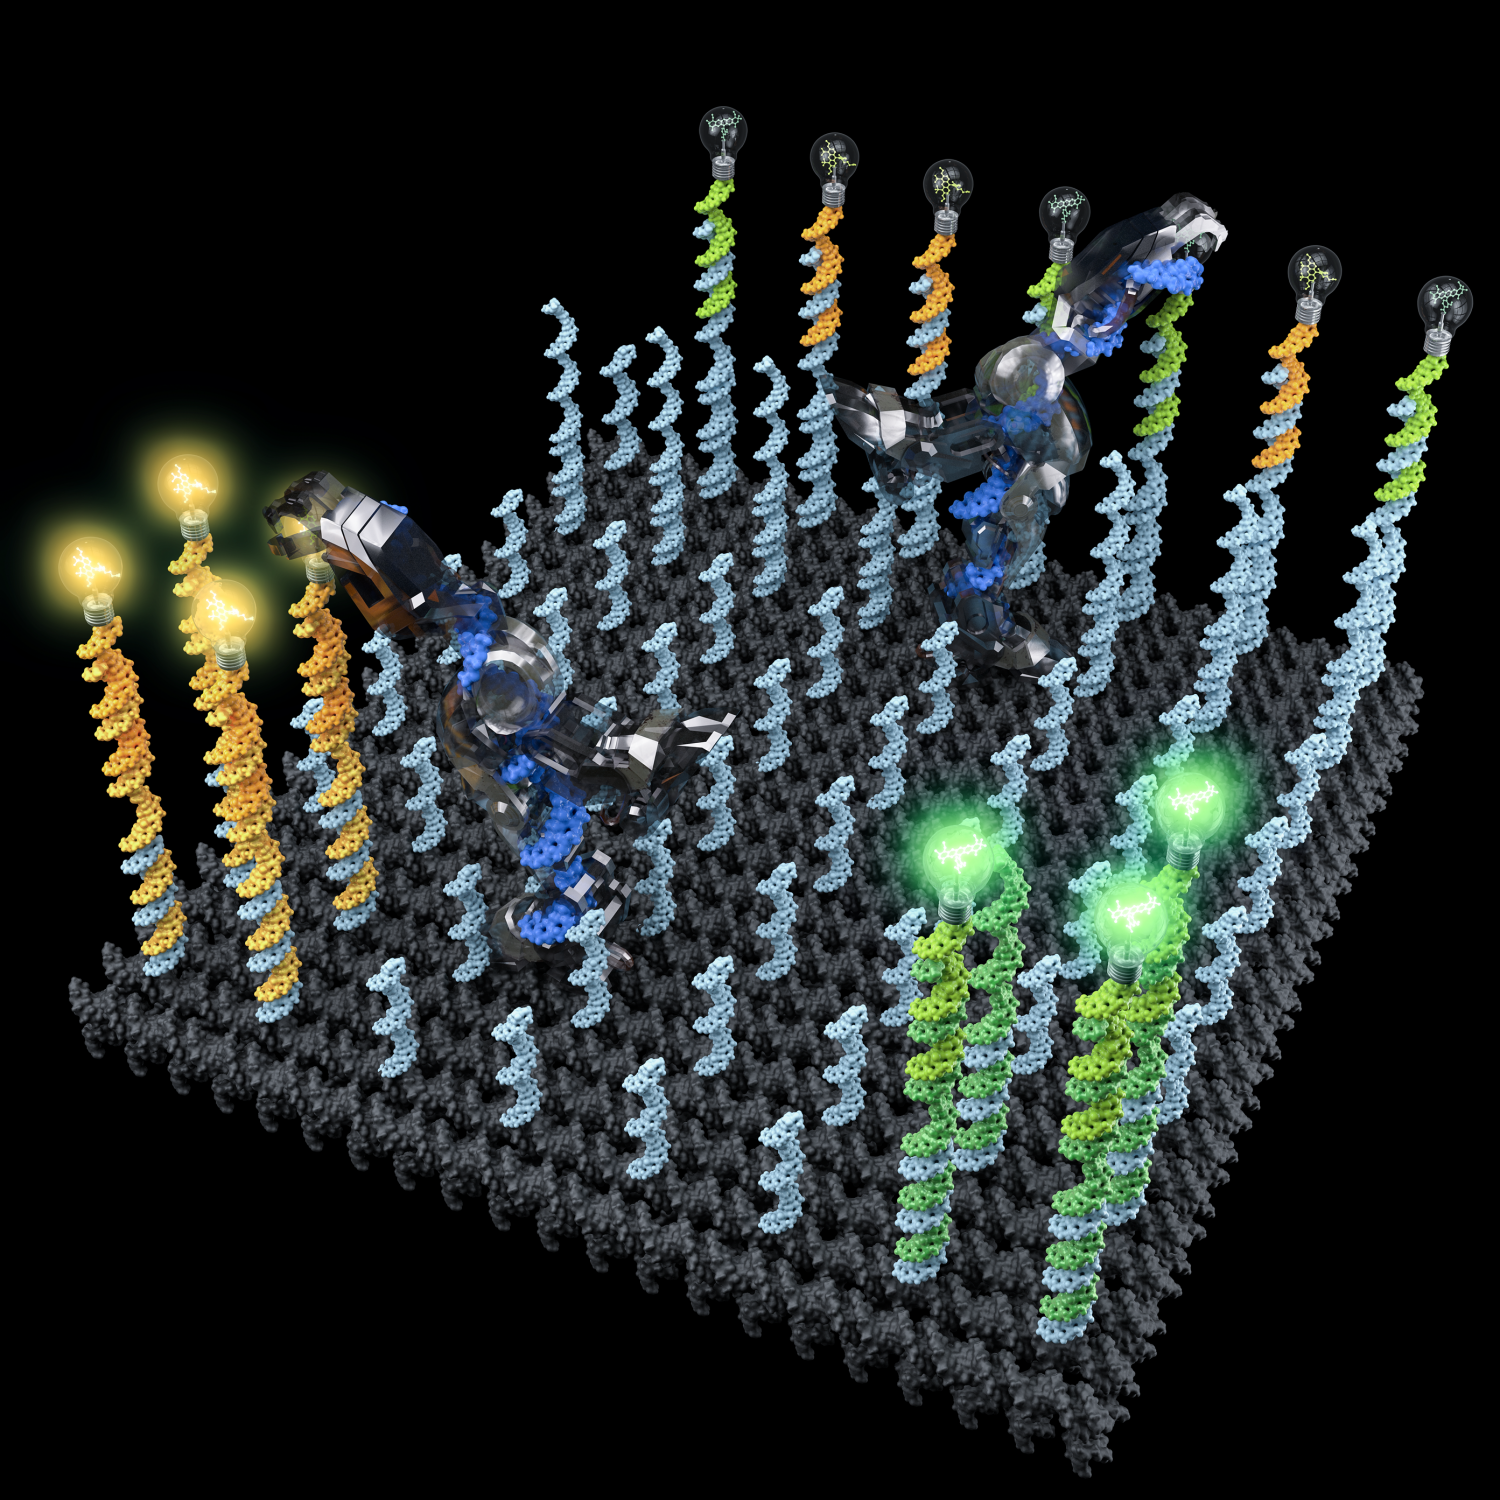 DNA Nanorobots Pick Up And Sort Molecules